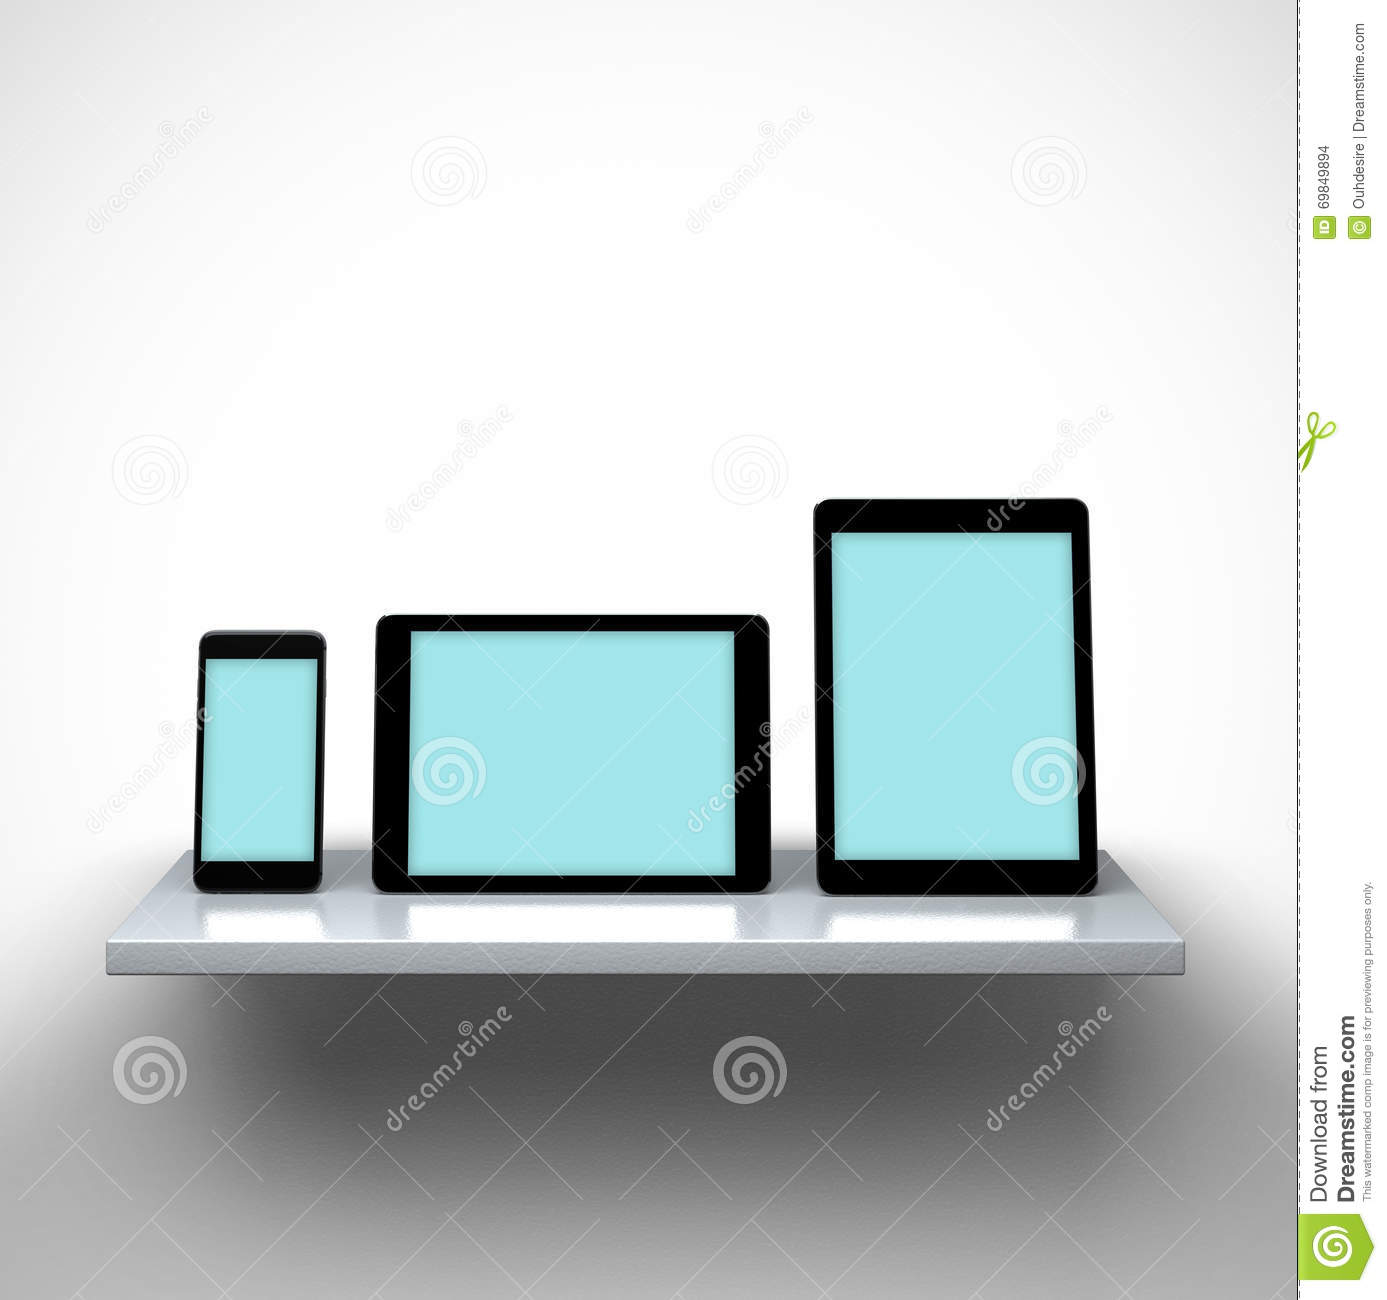 Digital Tablet Computers And Smart Phone On A Shelf